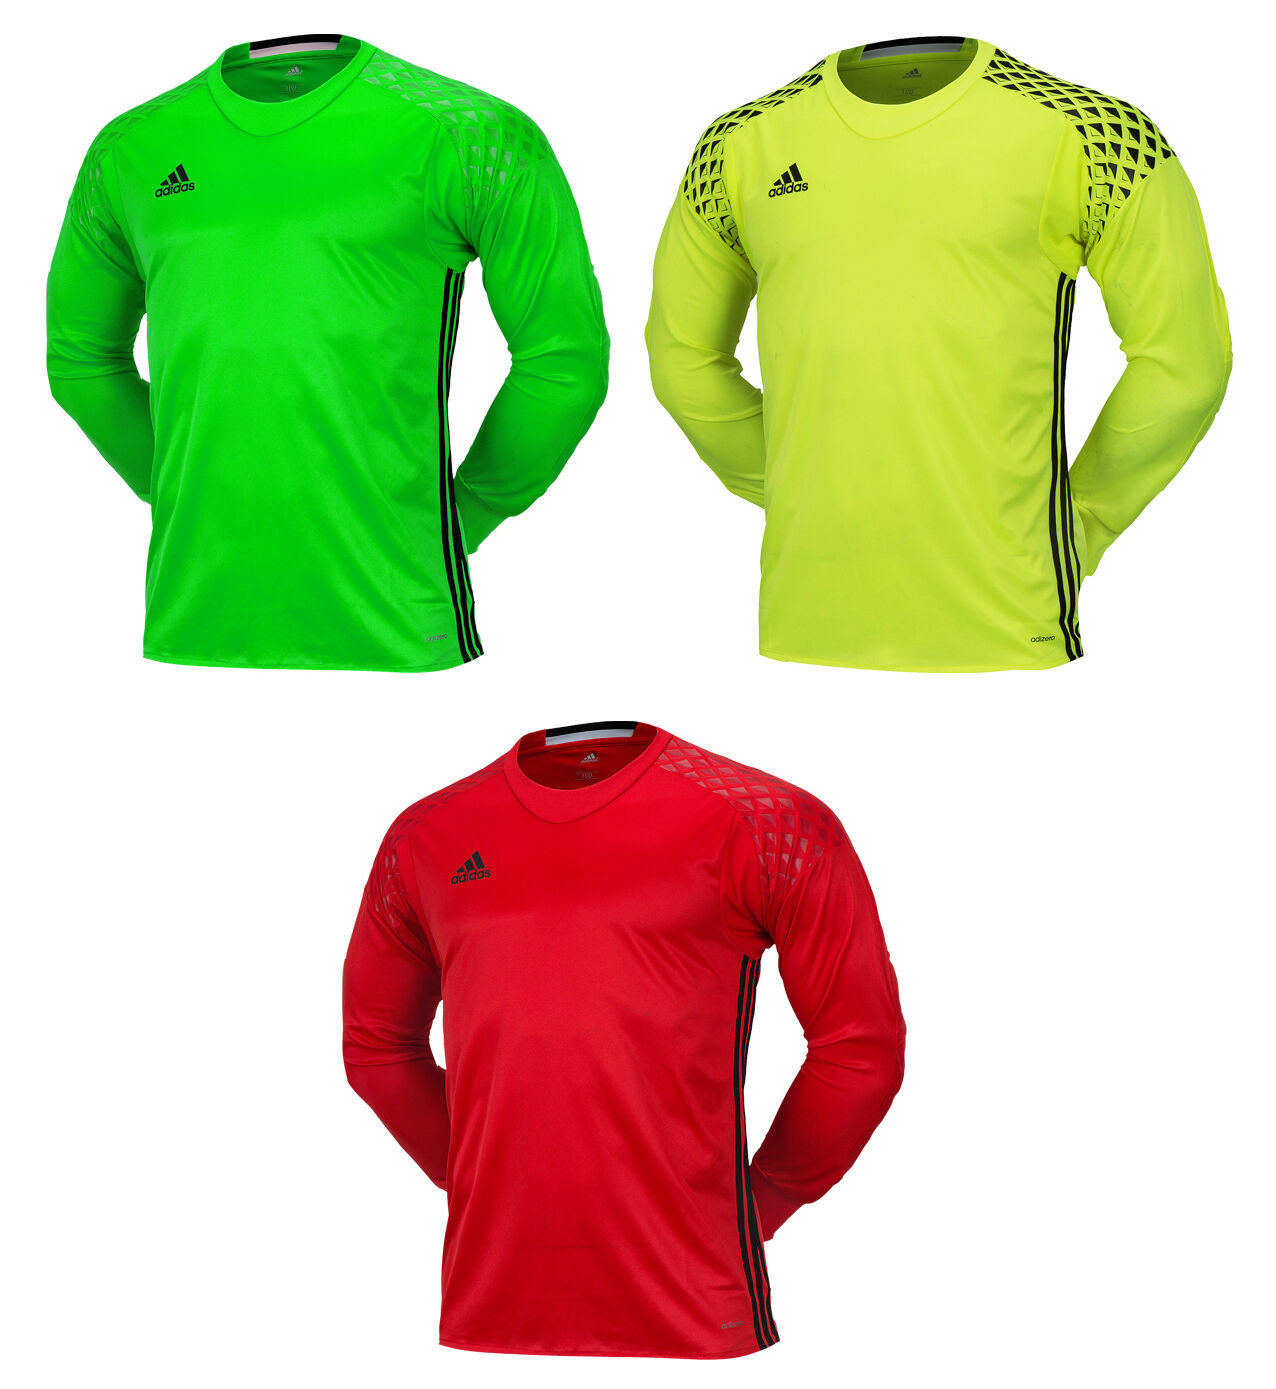 Adidas ONORE 16 GK L S Jersey T-Shirts Goalie Top Soccer Football Goal Keeper